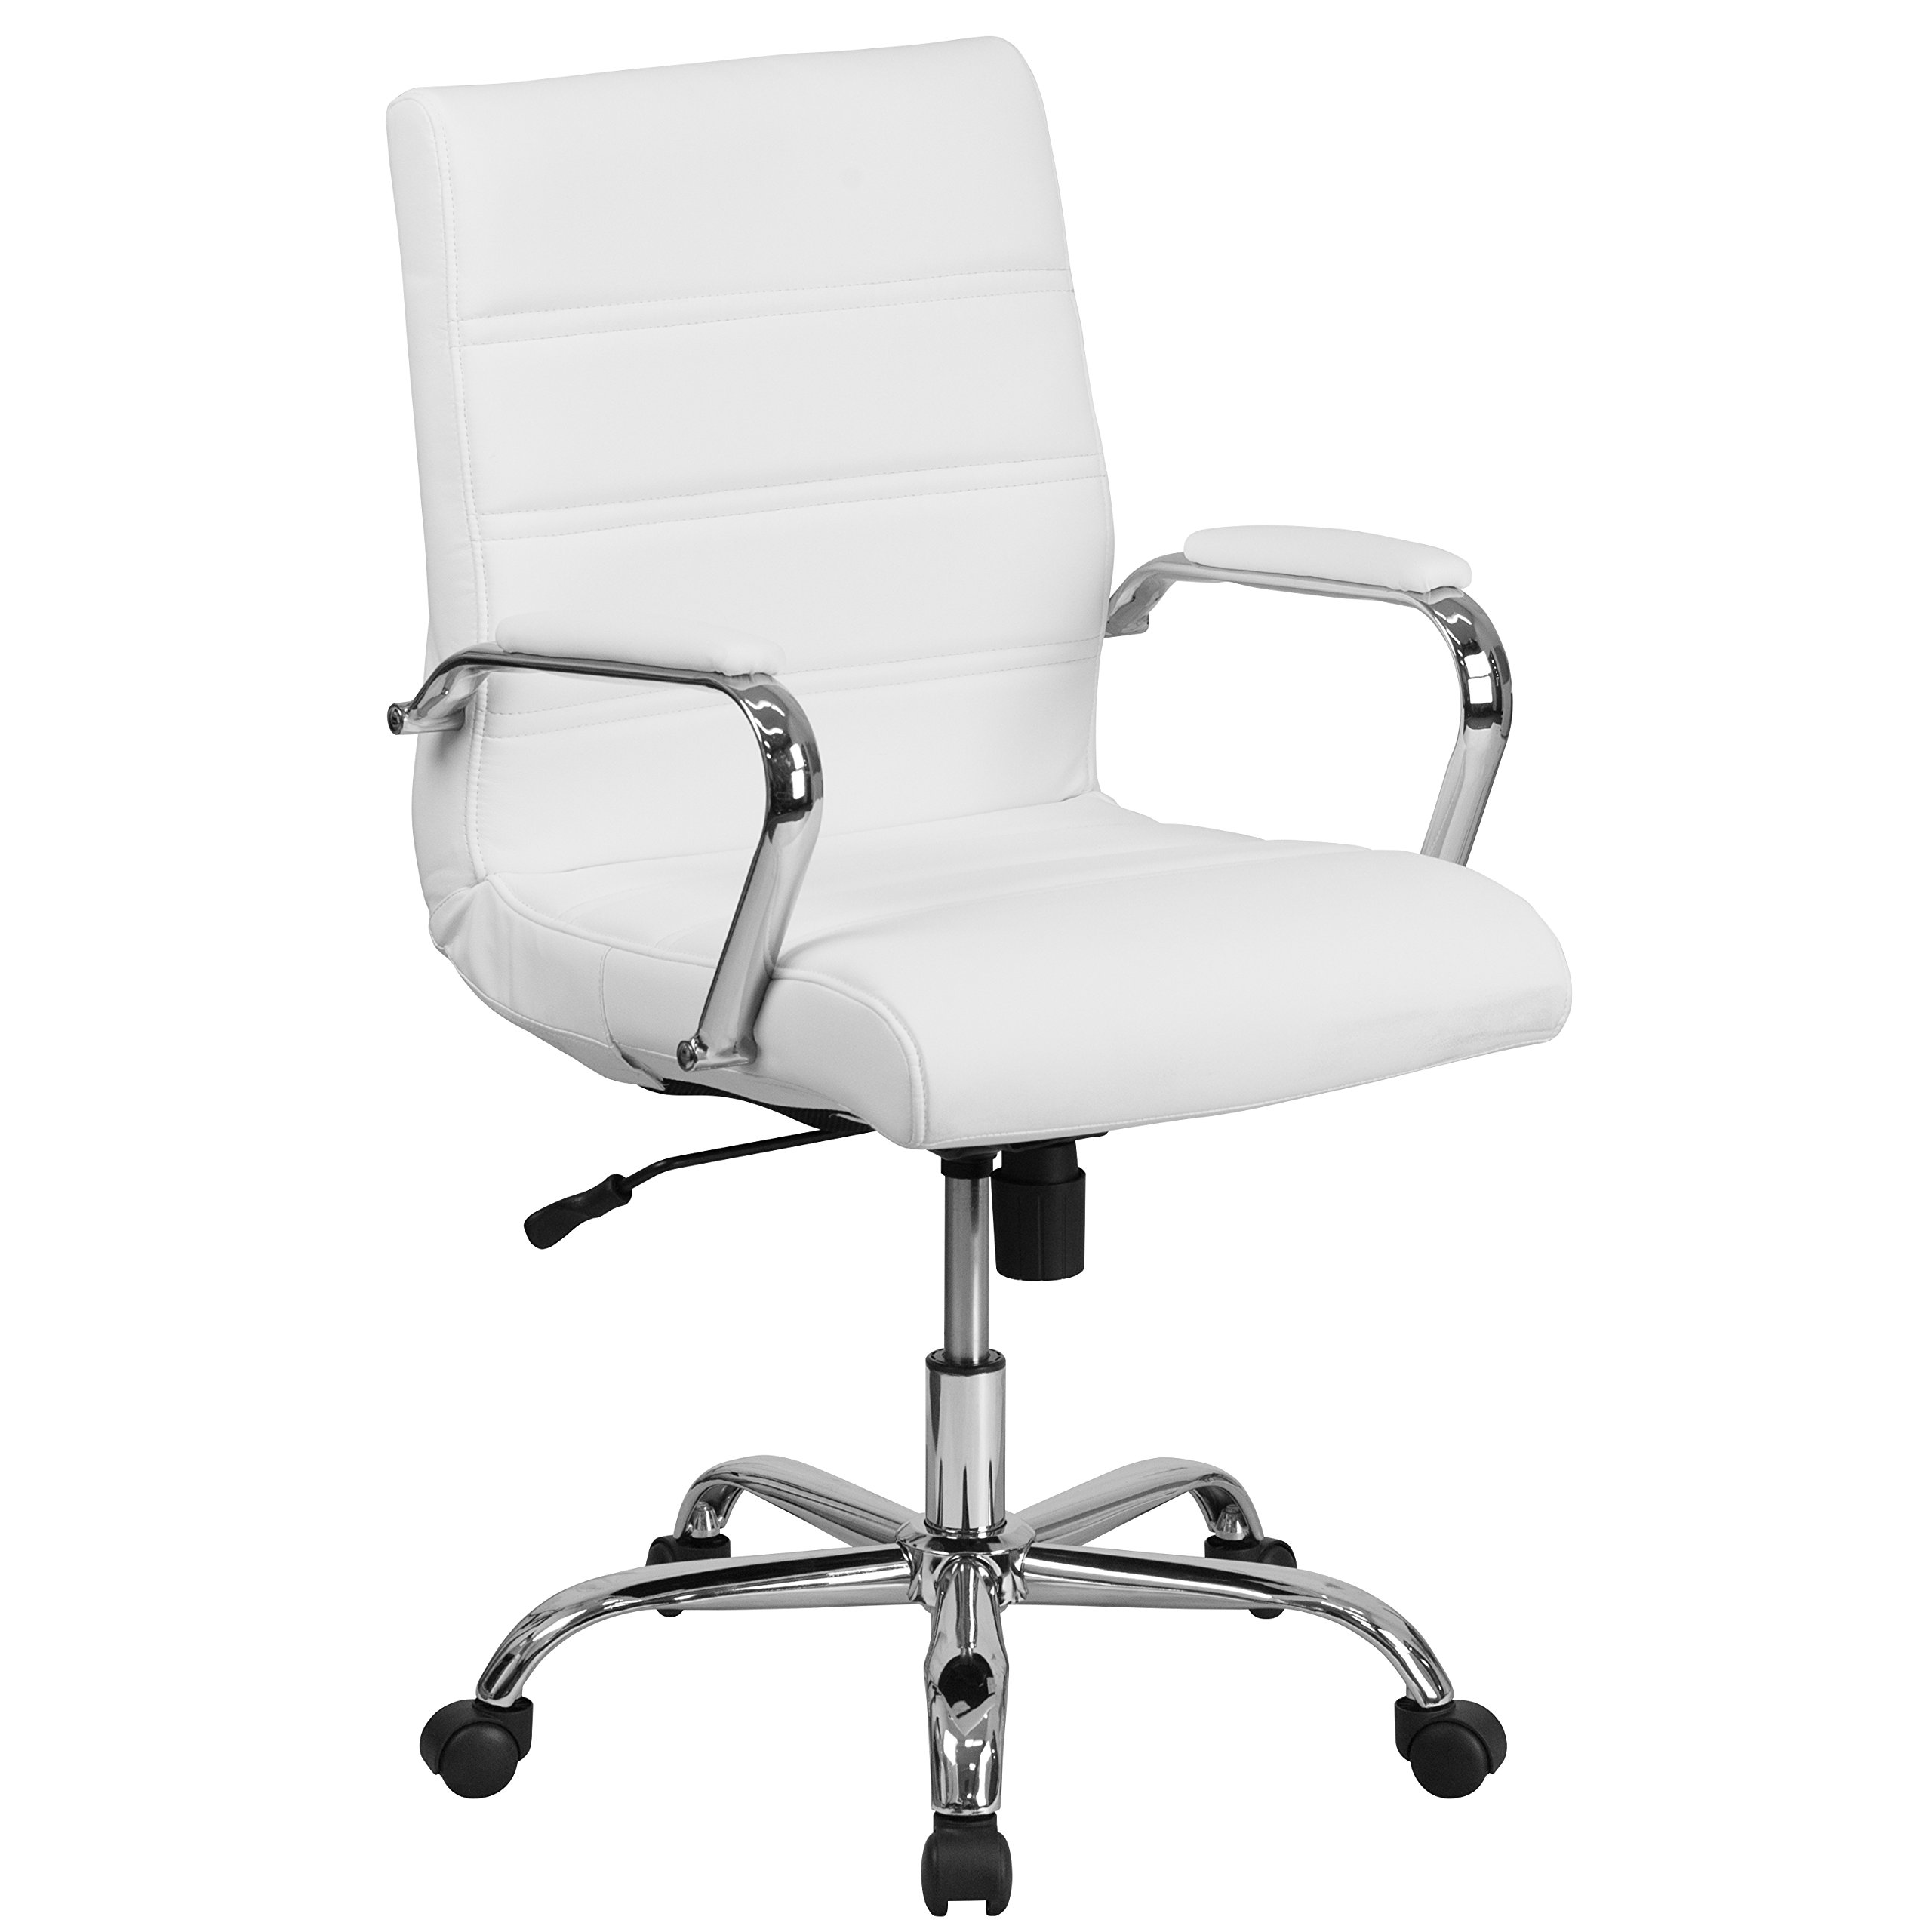 Flash Furniture Mid-Back White Leather Executive Swivel Chair with Chrome Base and Arms by Flash Furniture